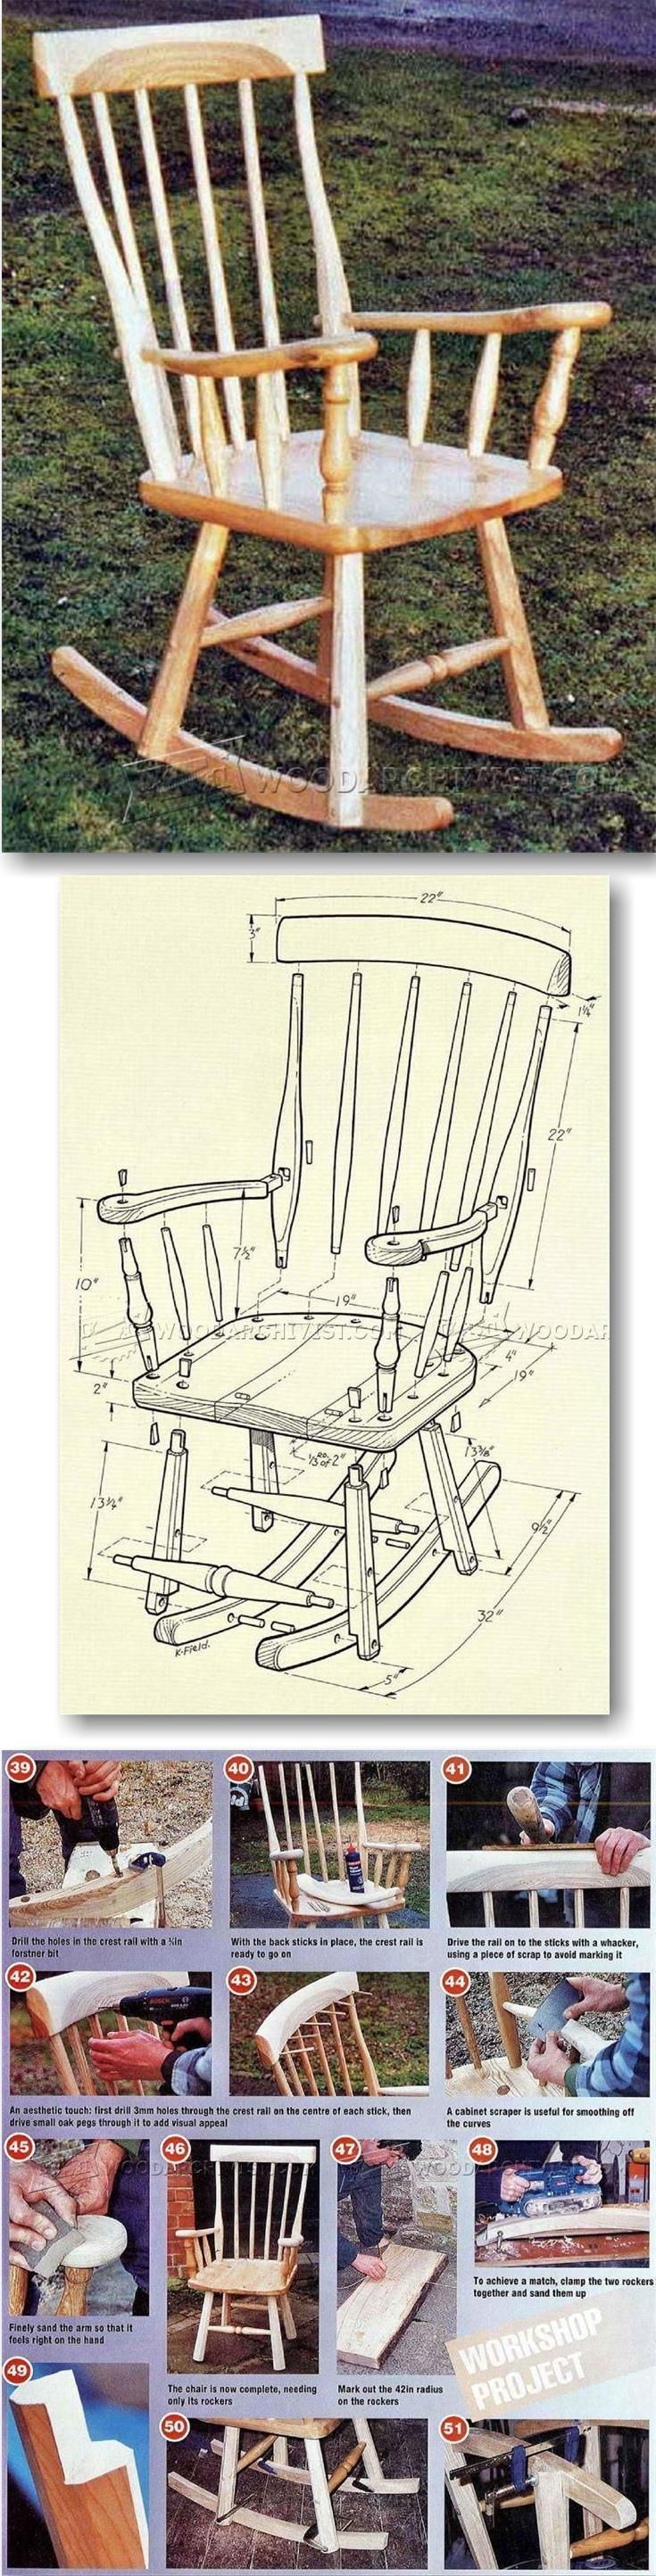 Rocking Chair Plans Furniture Plans and Projects